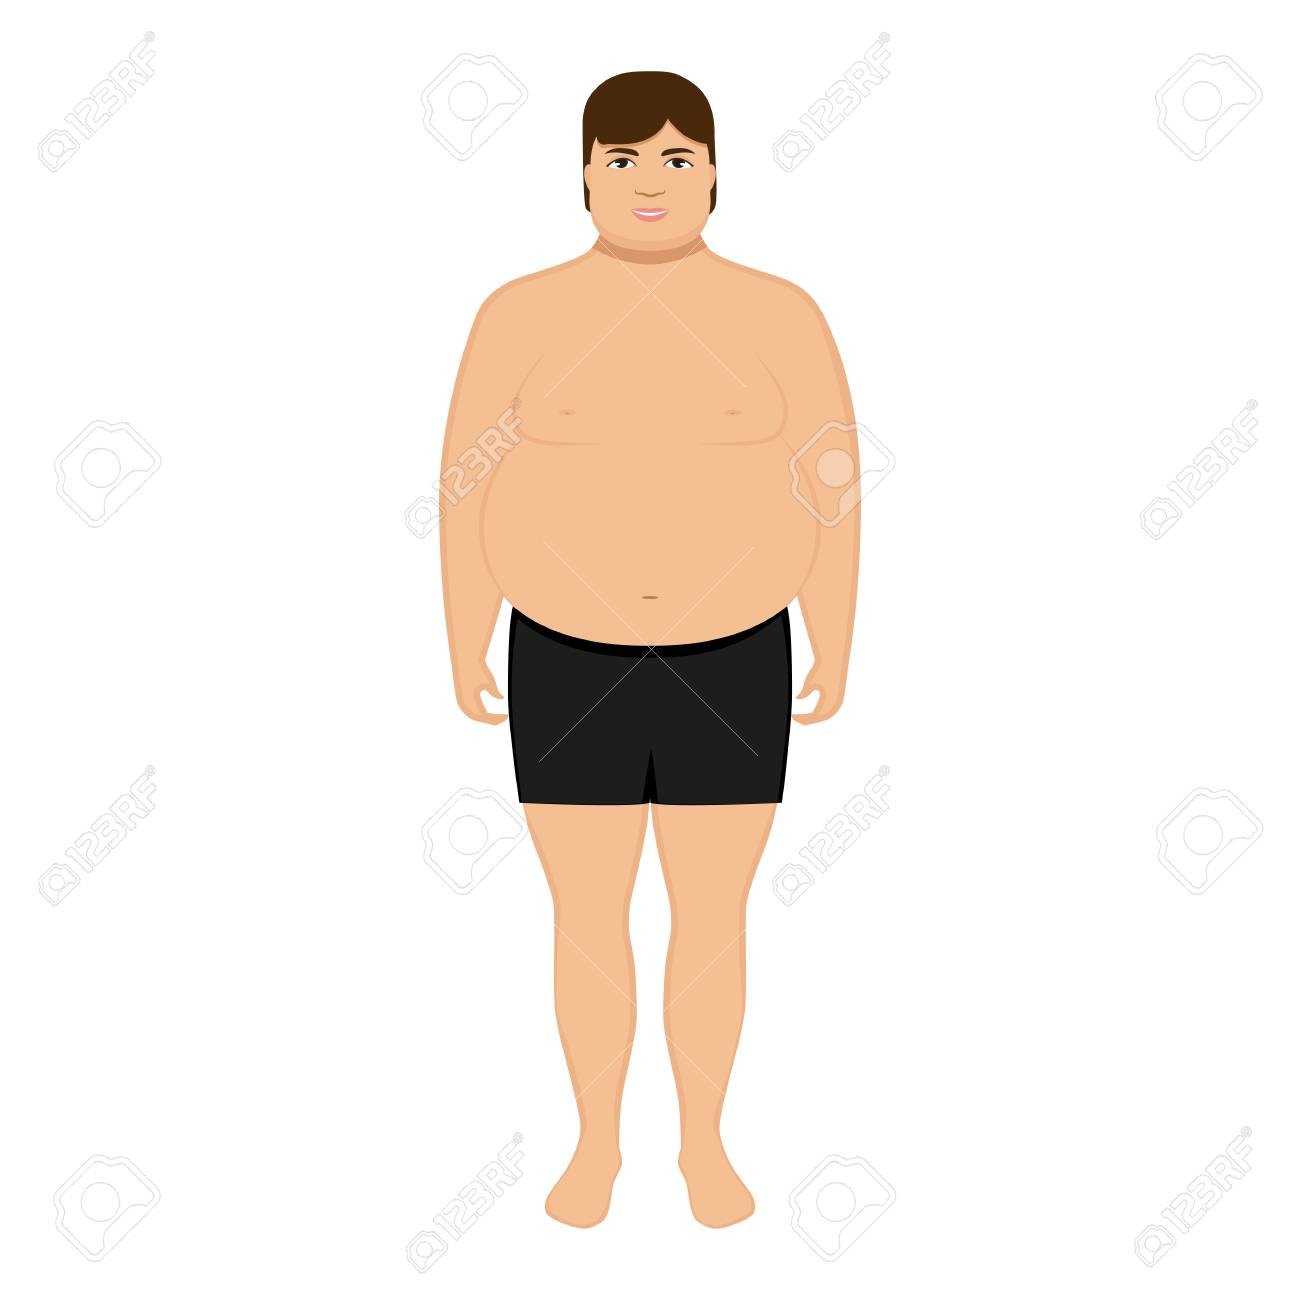 Vector Illustration Cartoon Fat Man Isolated White Background 1300x1300